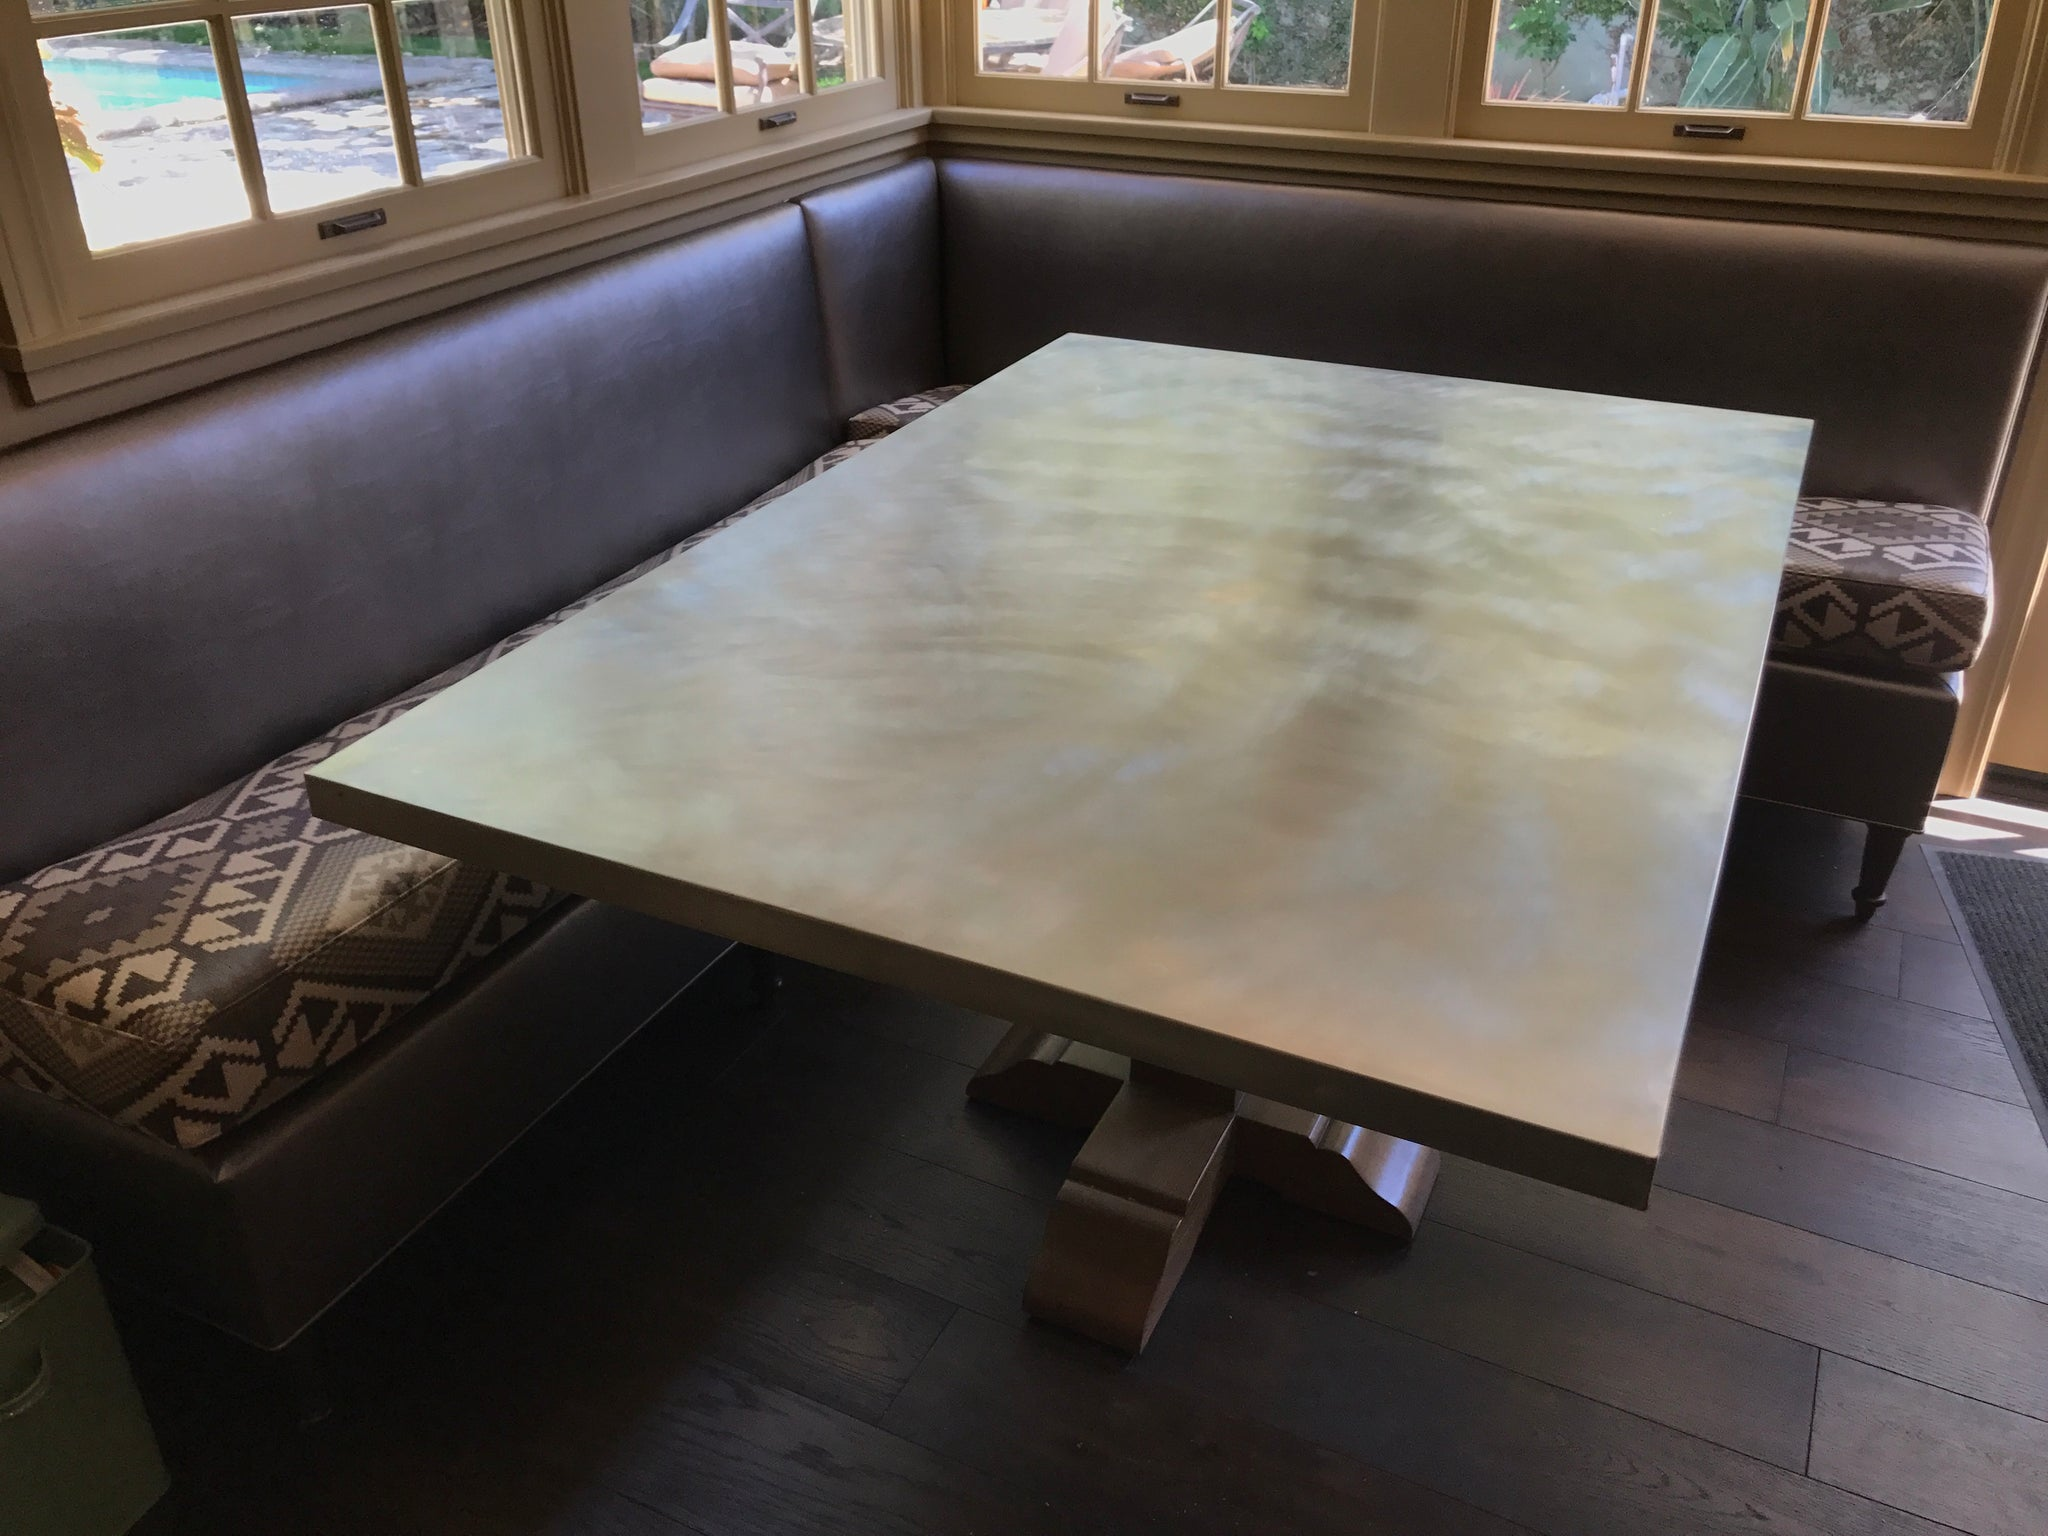 Upholstered Banquette and Zinc Top Pedestal Table